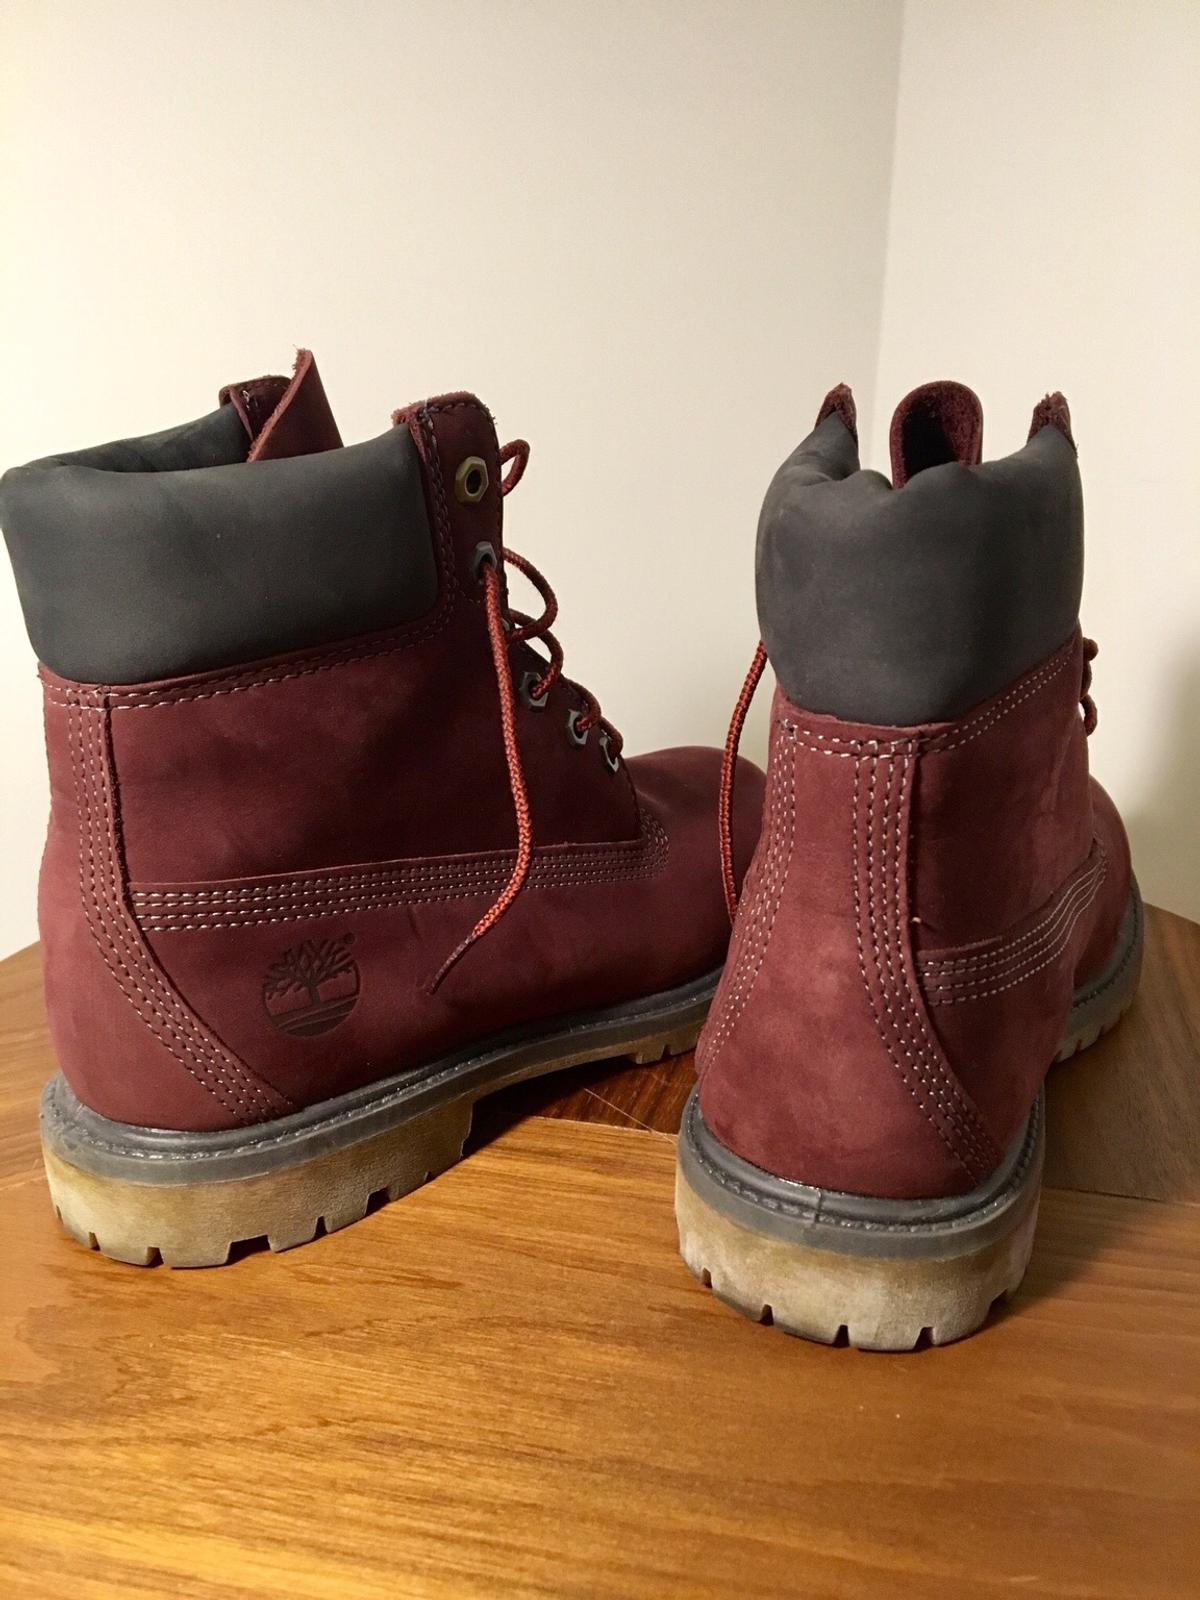 NEW* Timberland Women's 6 inch Premium Boots in E14 Hamlets